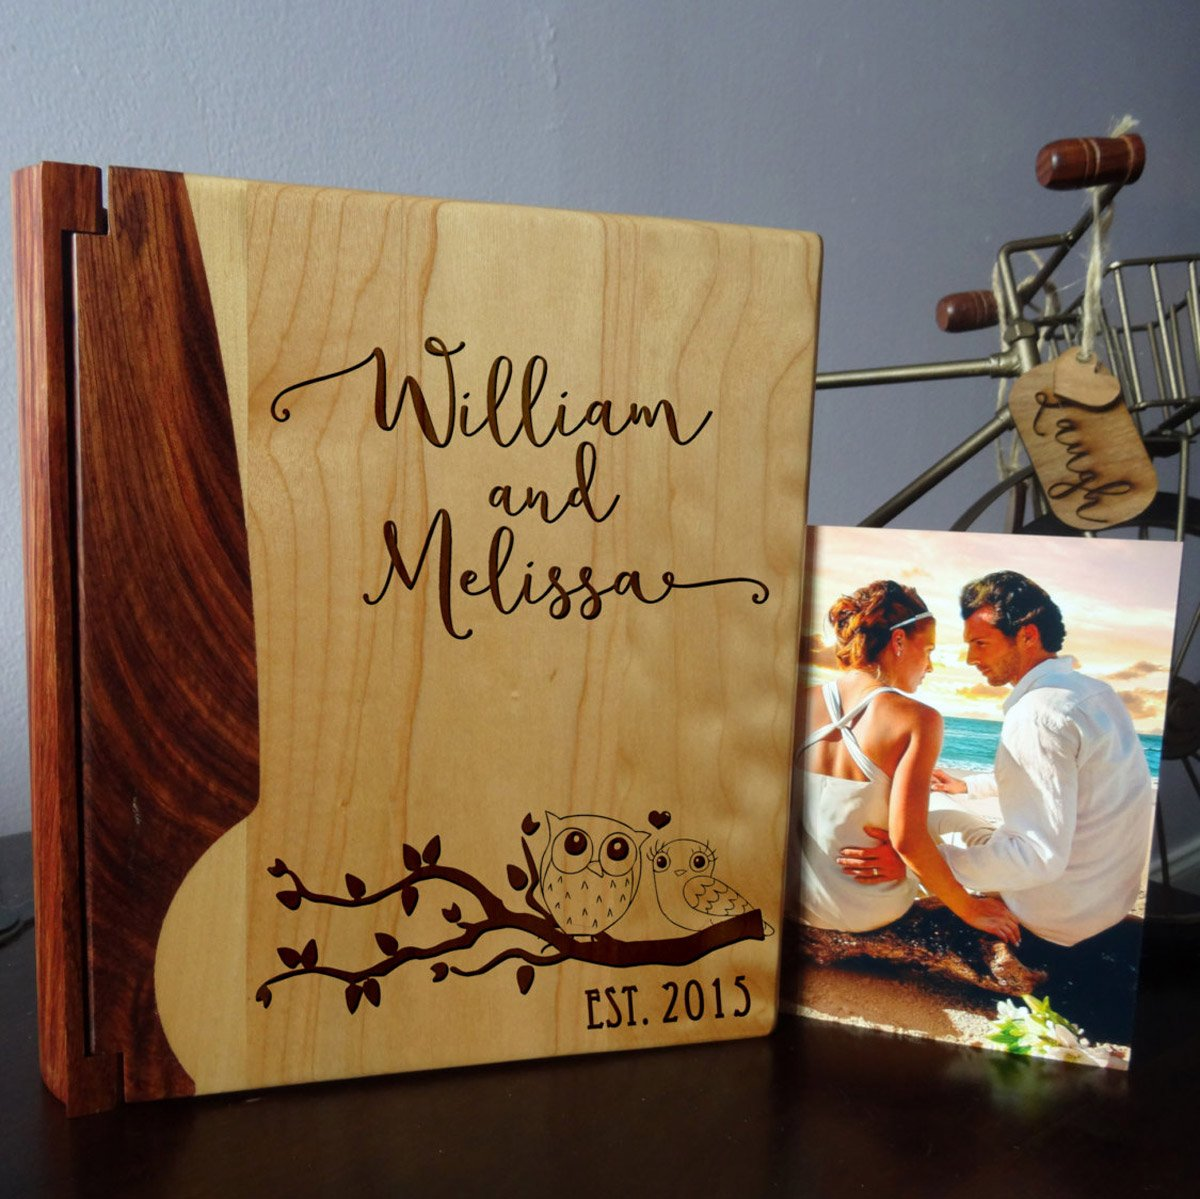 Personalized Wood Cover Photo Album, Custom Engraved Wedding Album, Style 1008 (Maple & Rosewood Cover)